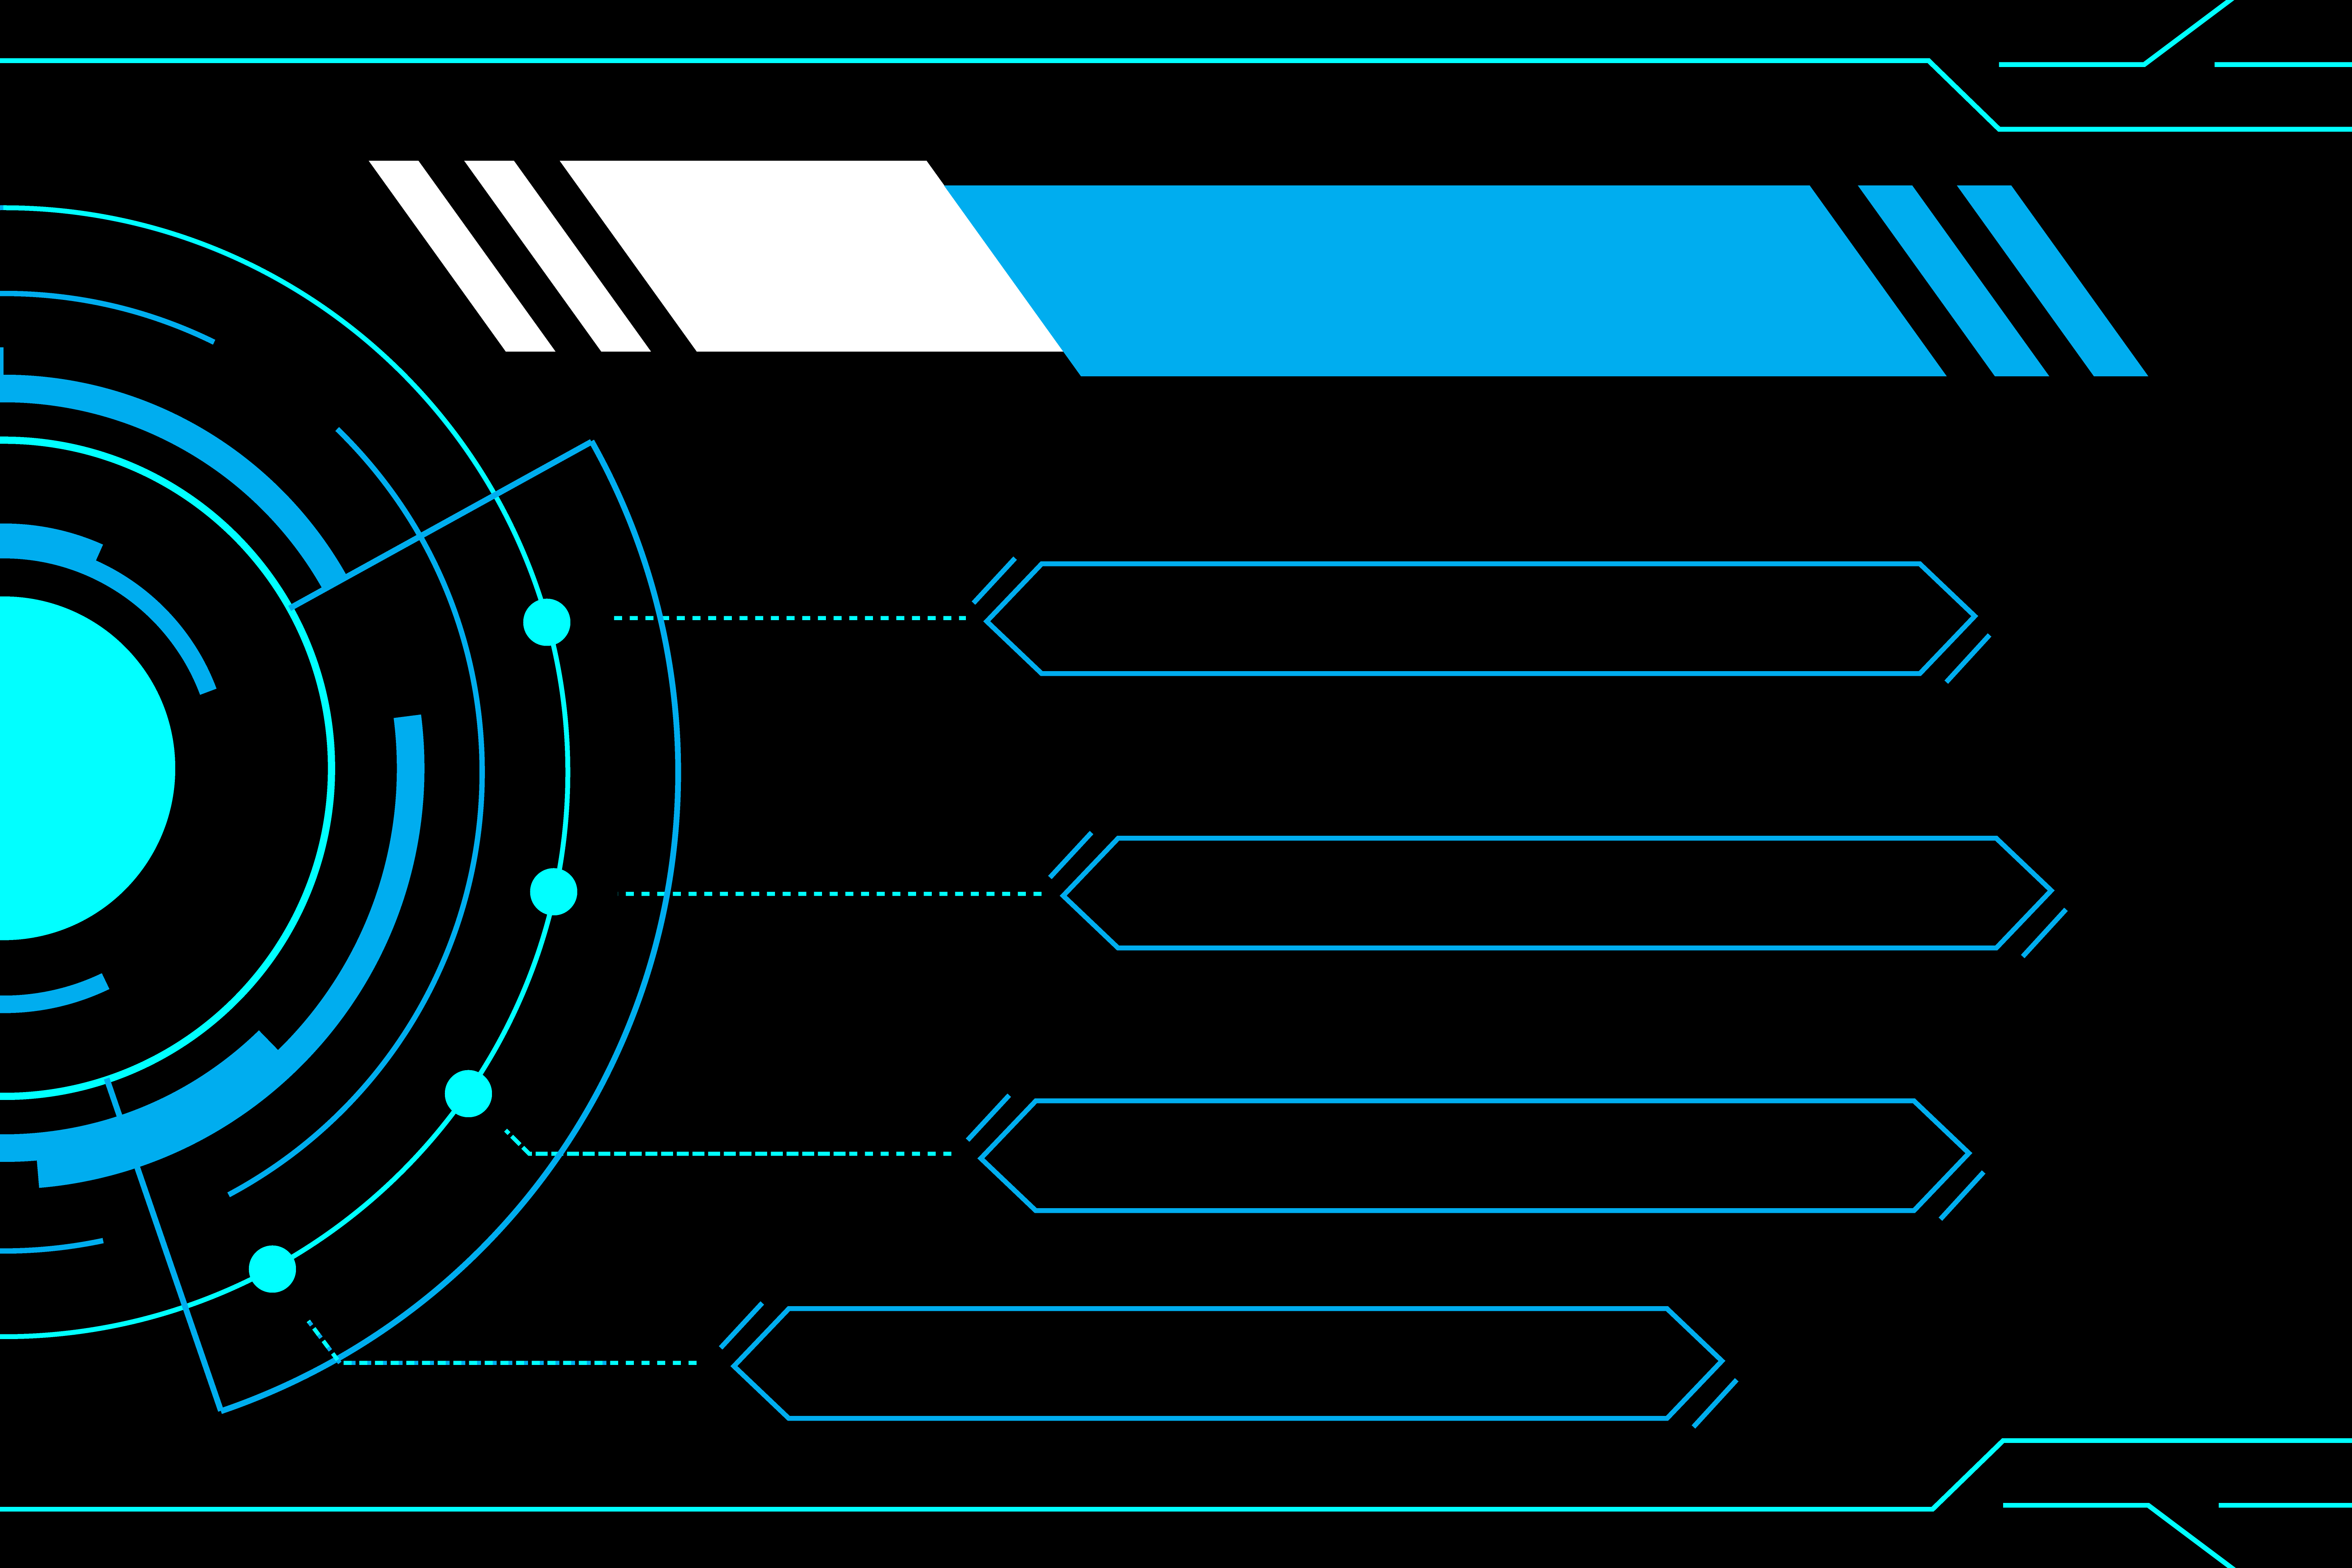 Blue Technology: Blue Abstract Technology Future Interface Hud Vector